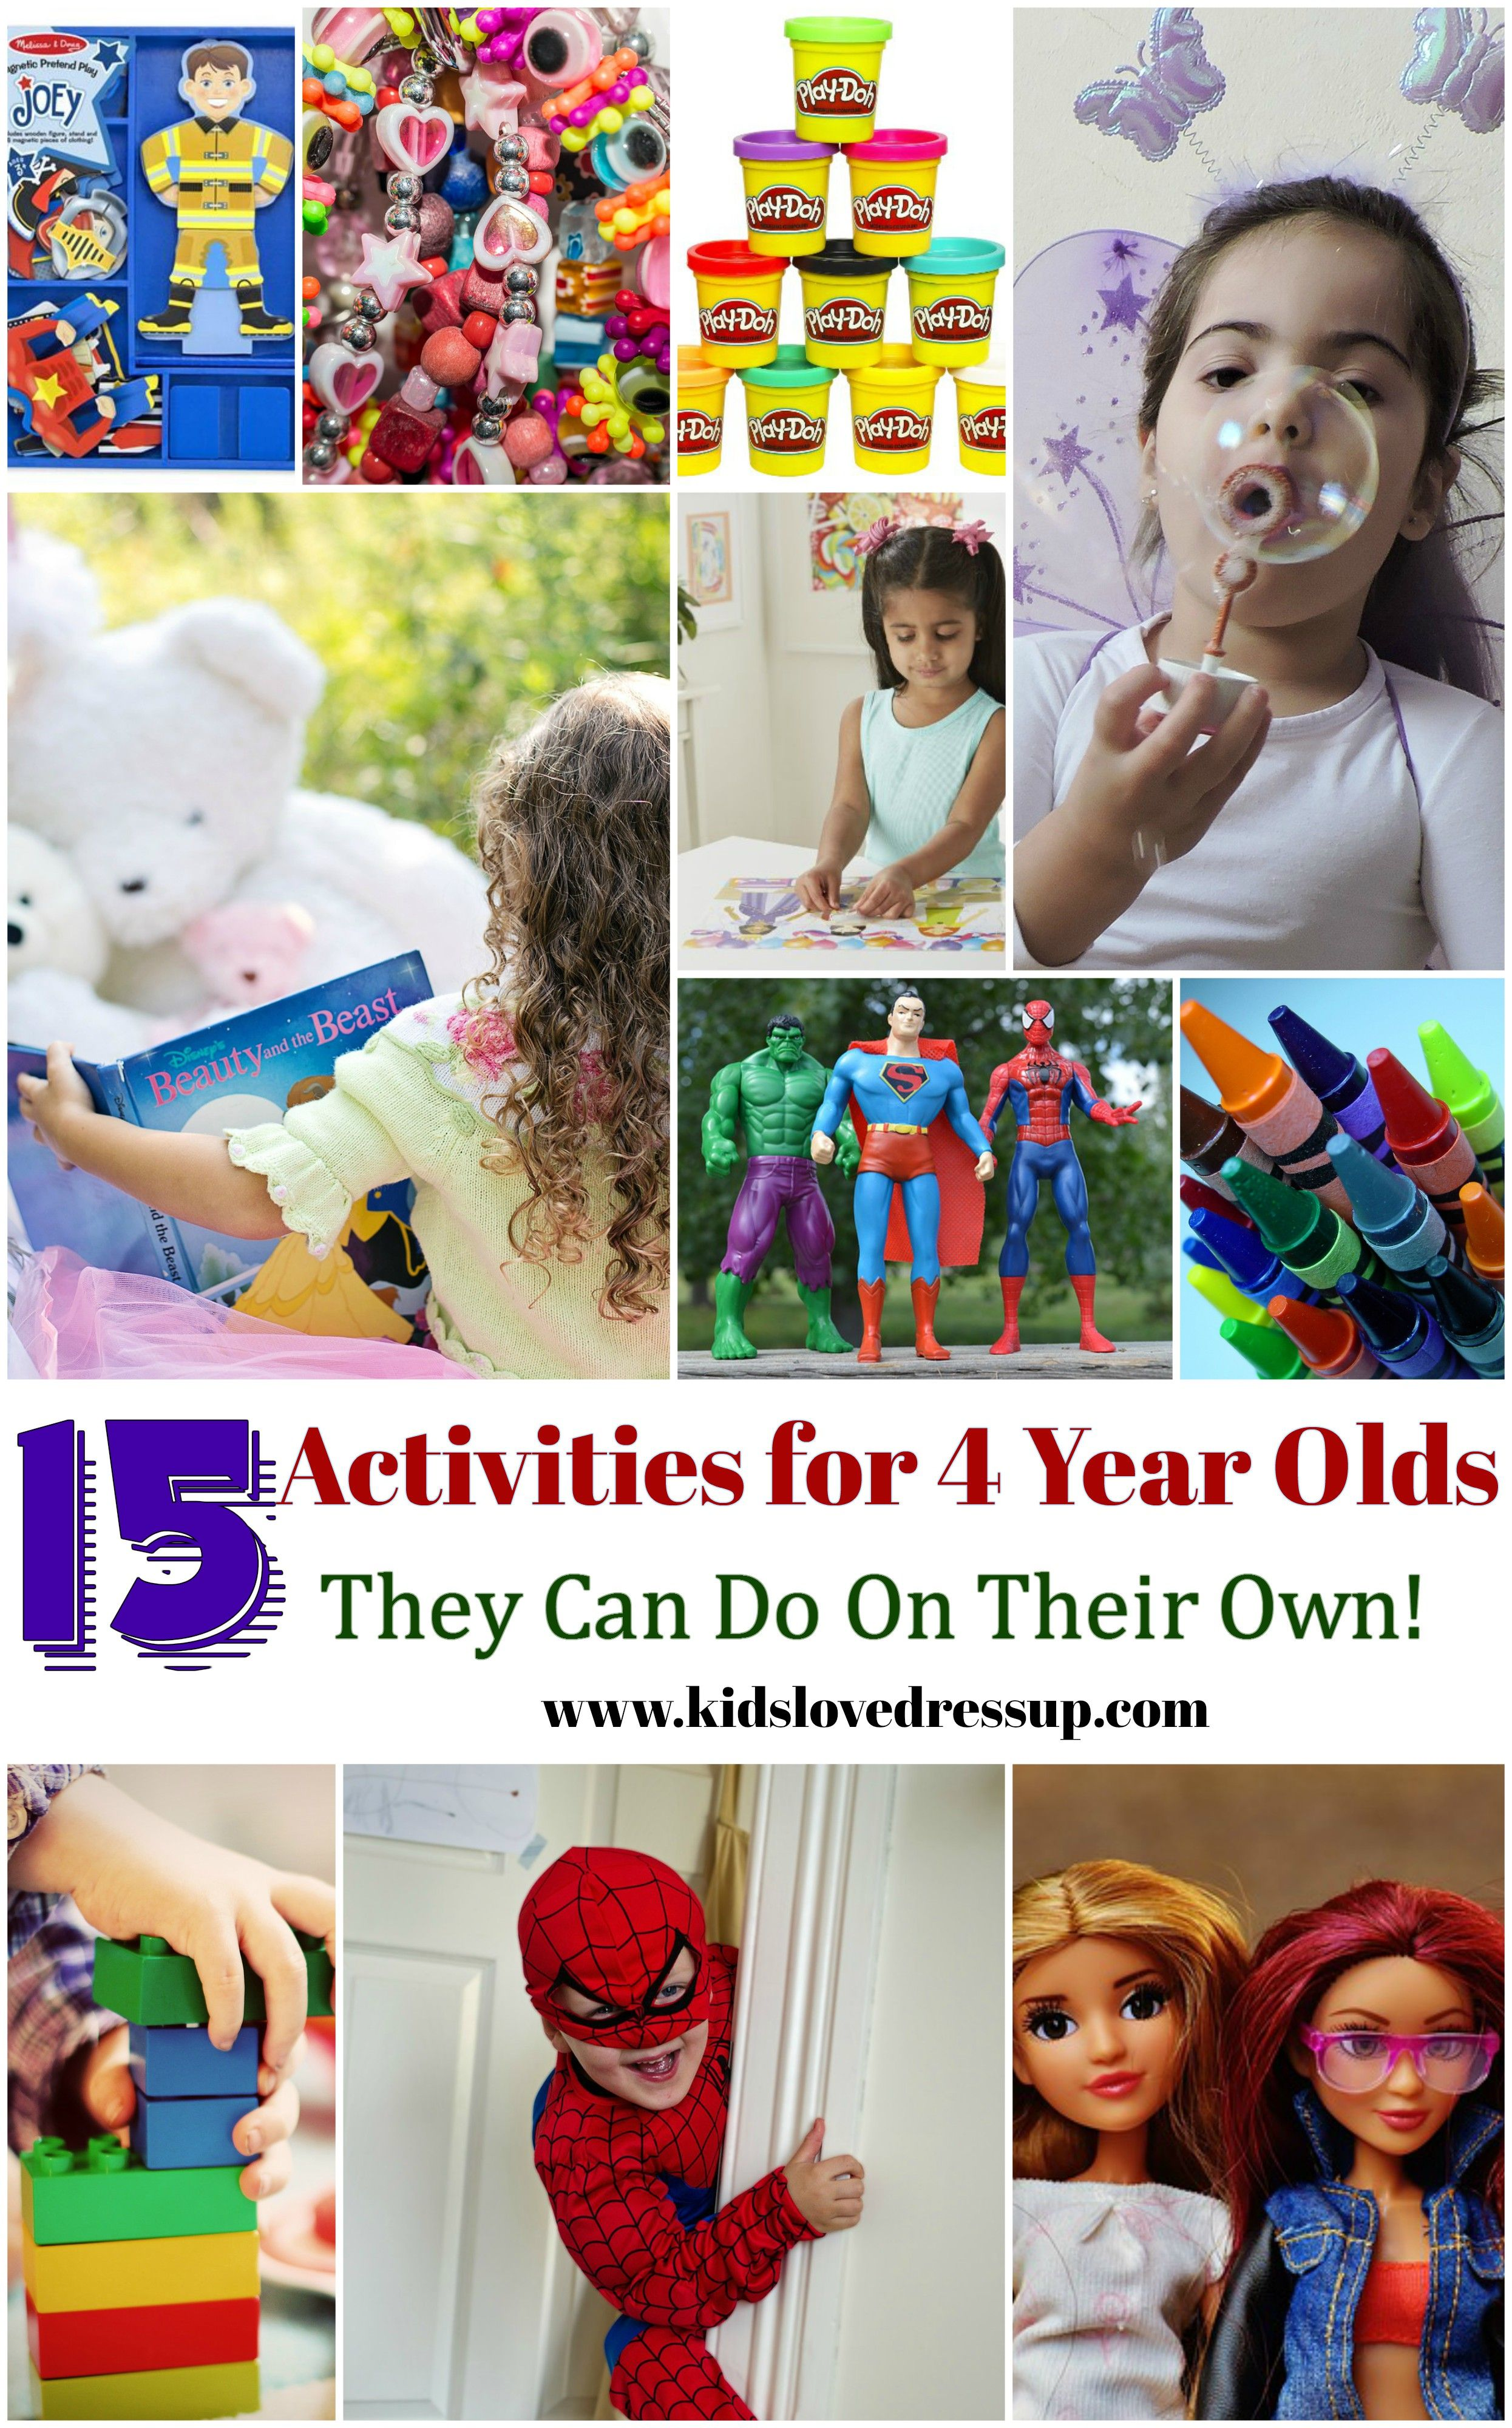 15 Fun Activities For 4 Year Olds That They Can Do On